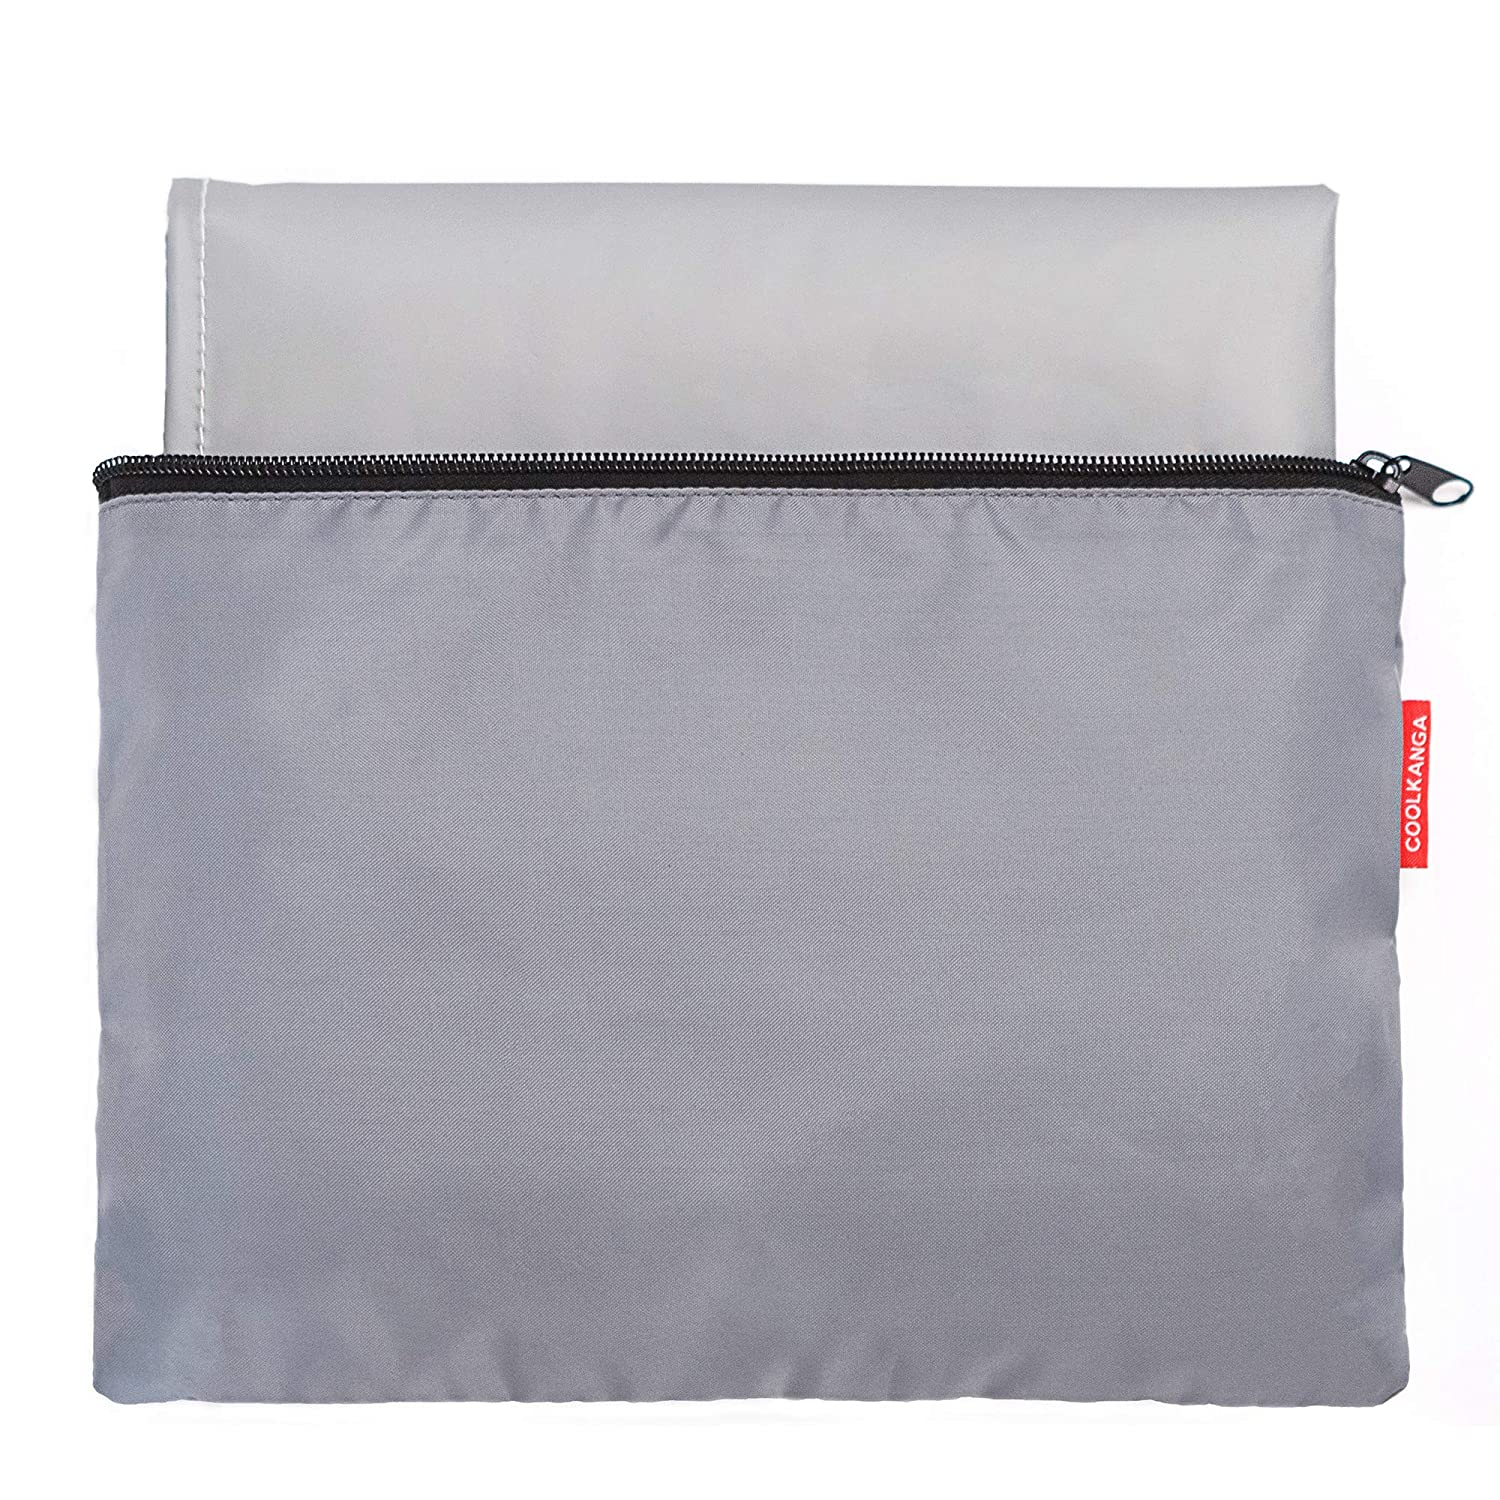 Portable Changing Pad: Large, Fully Padded, Waterproof and Wipeable Travel Mat with Storage Bag – Lightweight and Compact Baby Diaper Change Station for Newborns, Infants and Toddlers by COOLKANGA